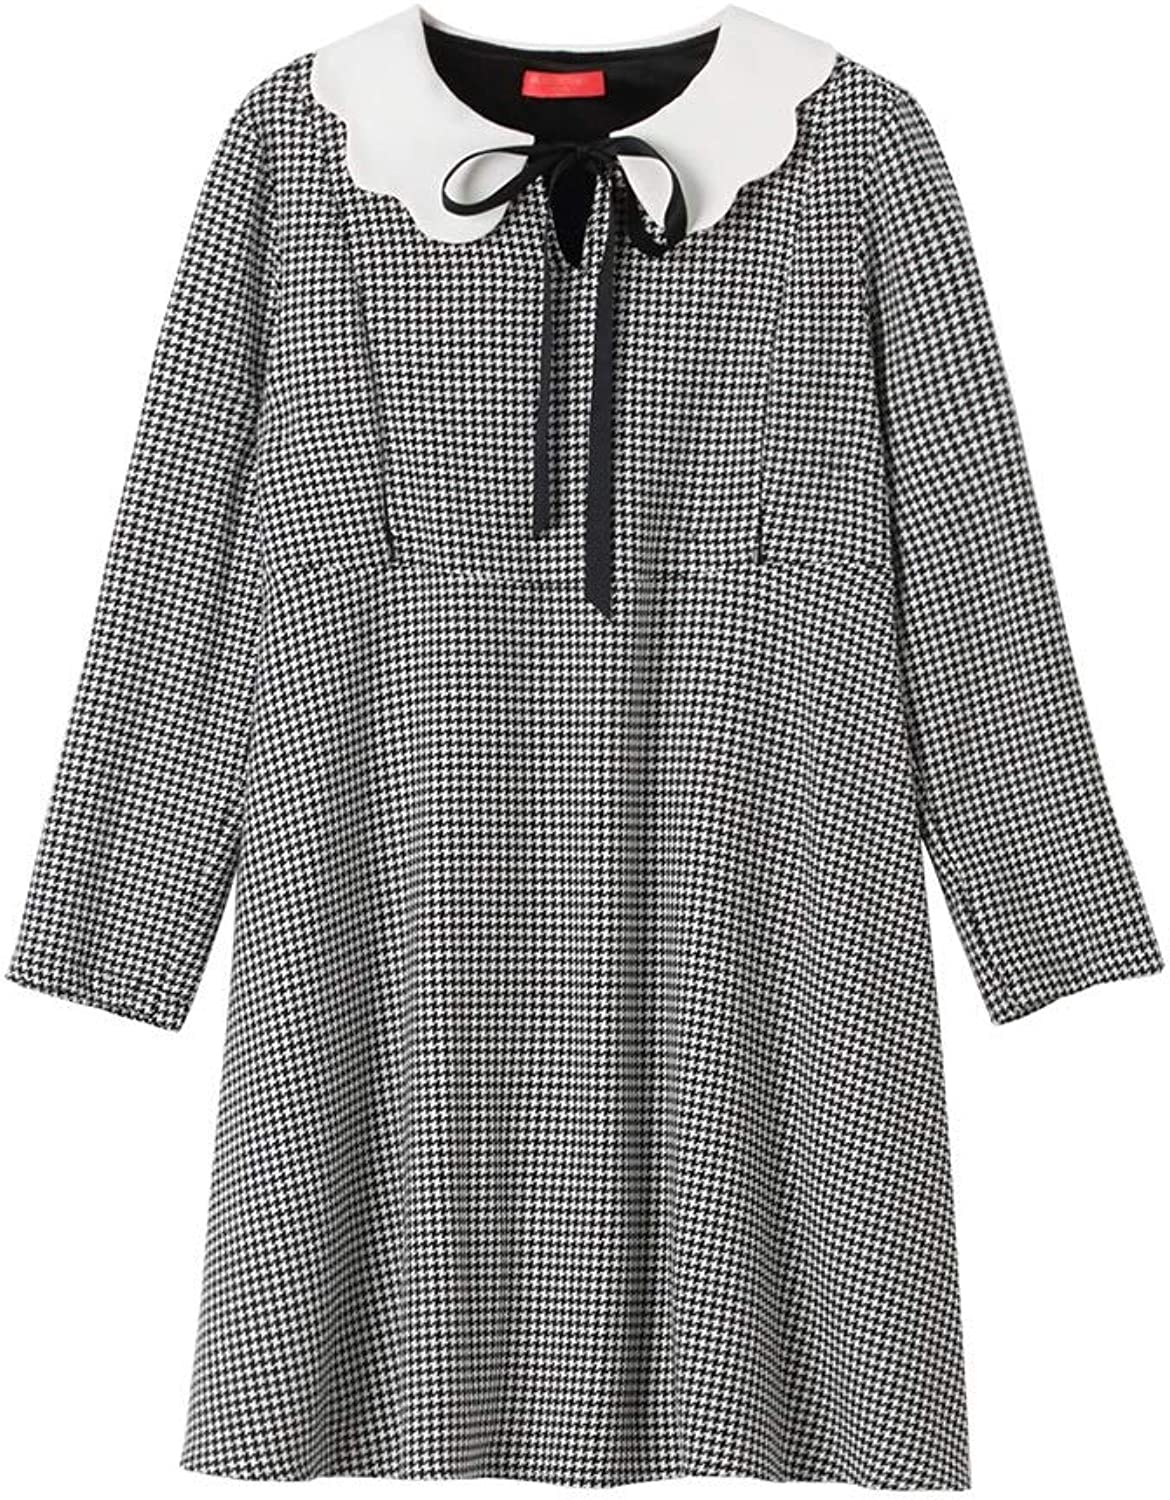 Maternity Clothes Four Seasons Skirt Classic Houndstooth Long Sleeves Dress Breastfeeding Clothes Pregnancy Clothes Soft and Snug Pregnant Women Gift (color   Natural, Size   XXL)